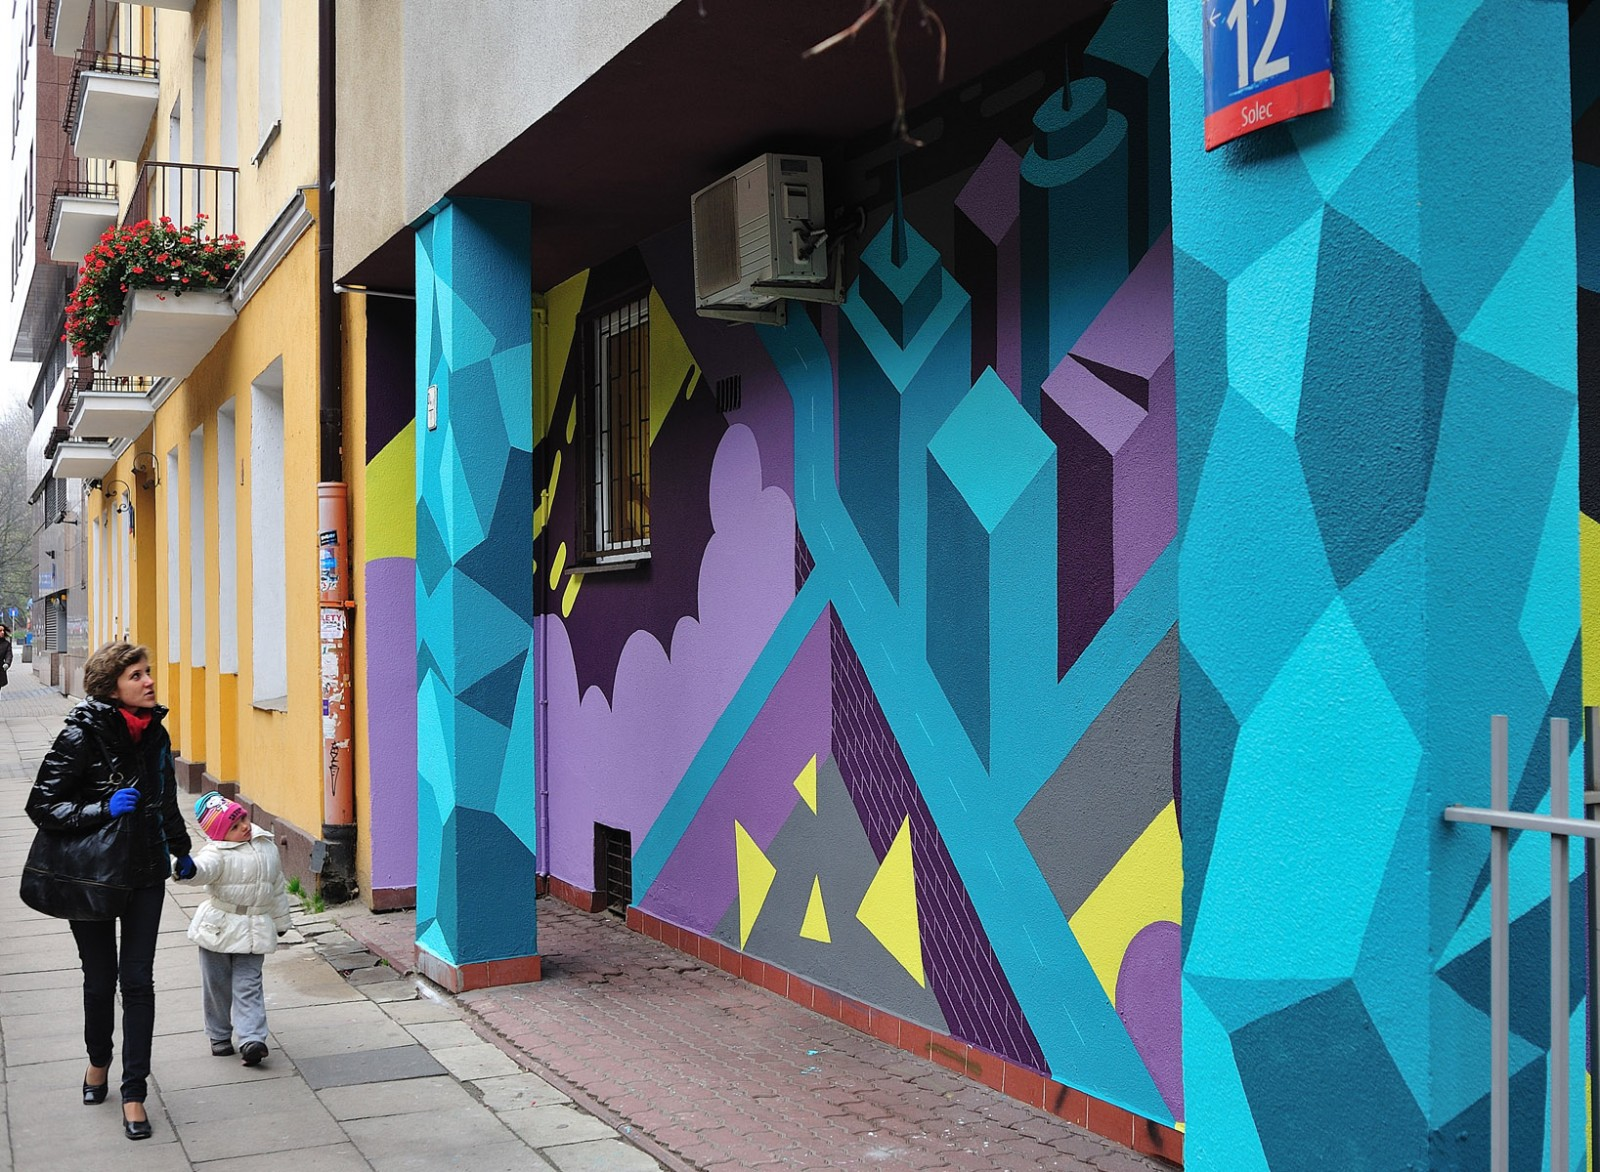 Warsaw Downtown housing association mural on the wall | SSM Mural | Portfolio